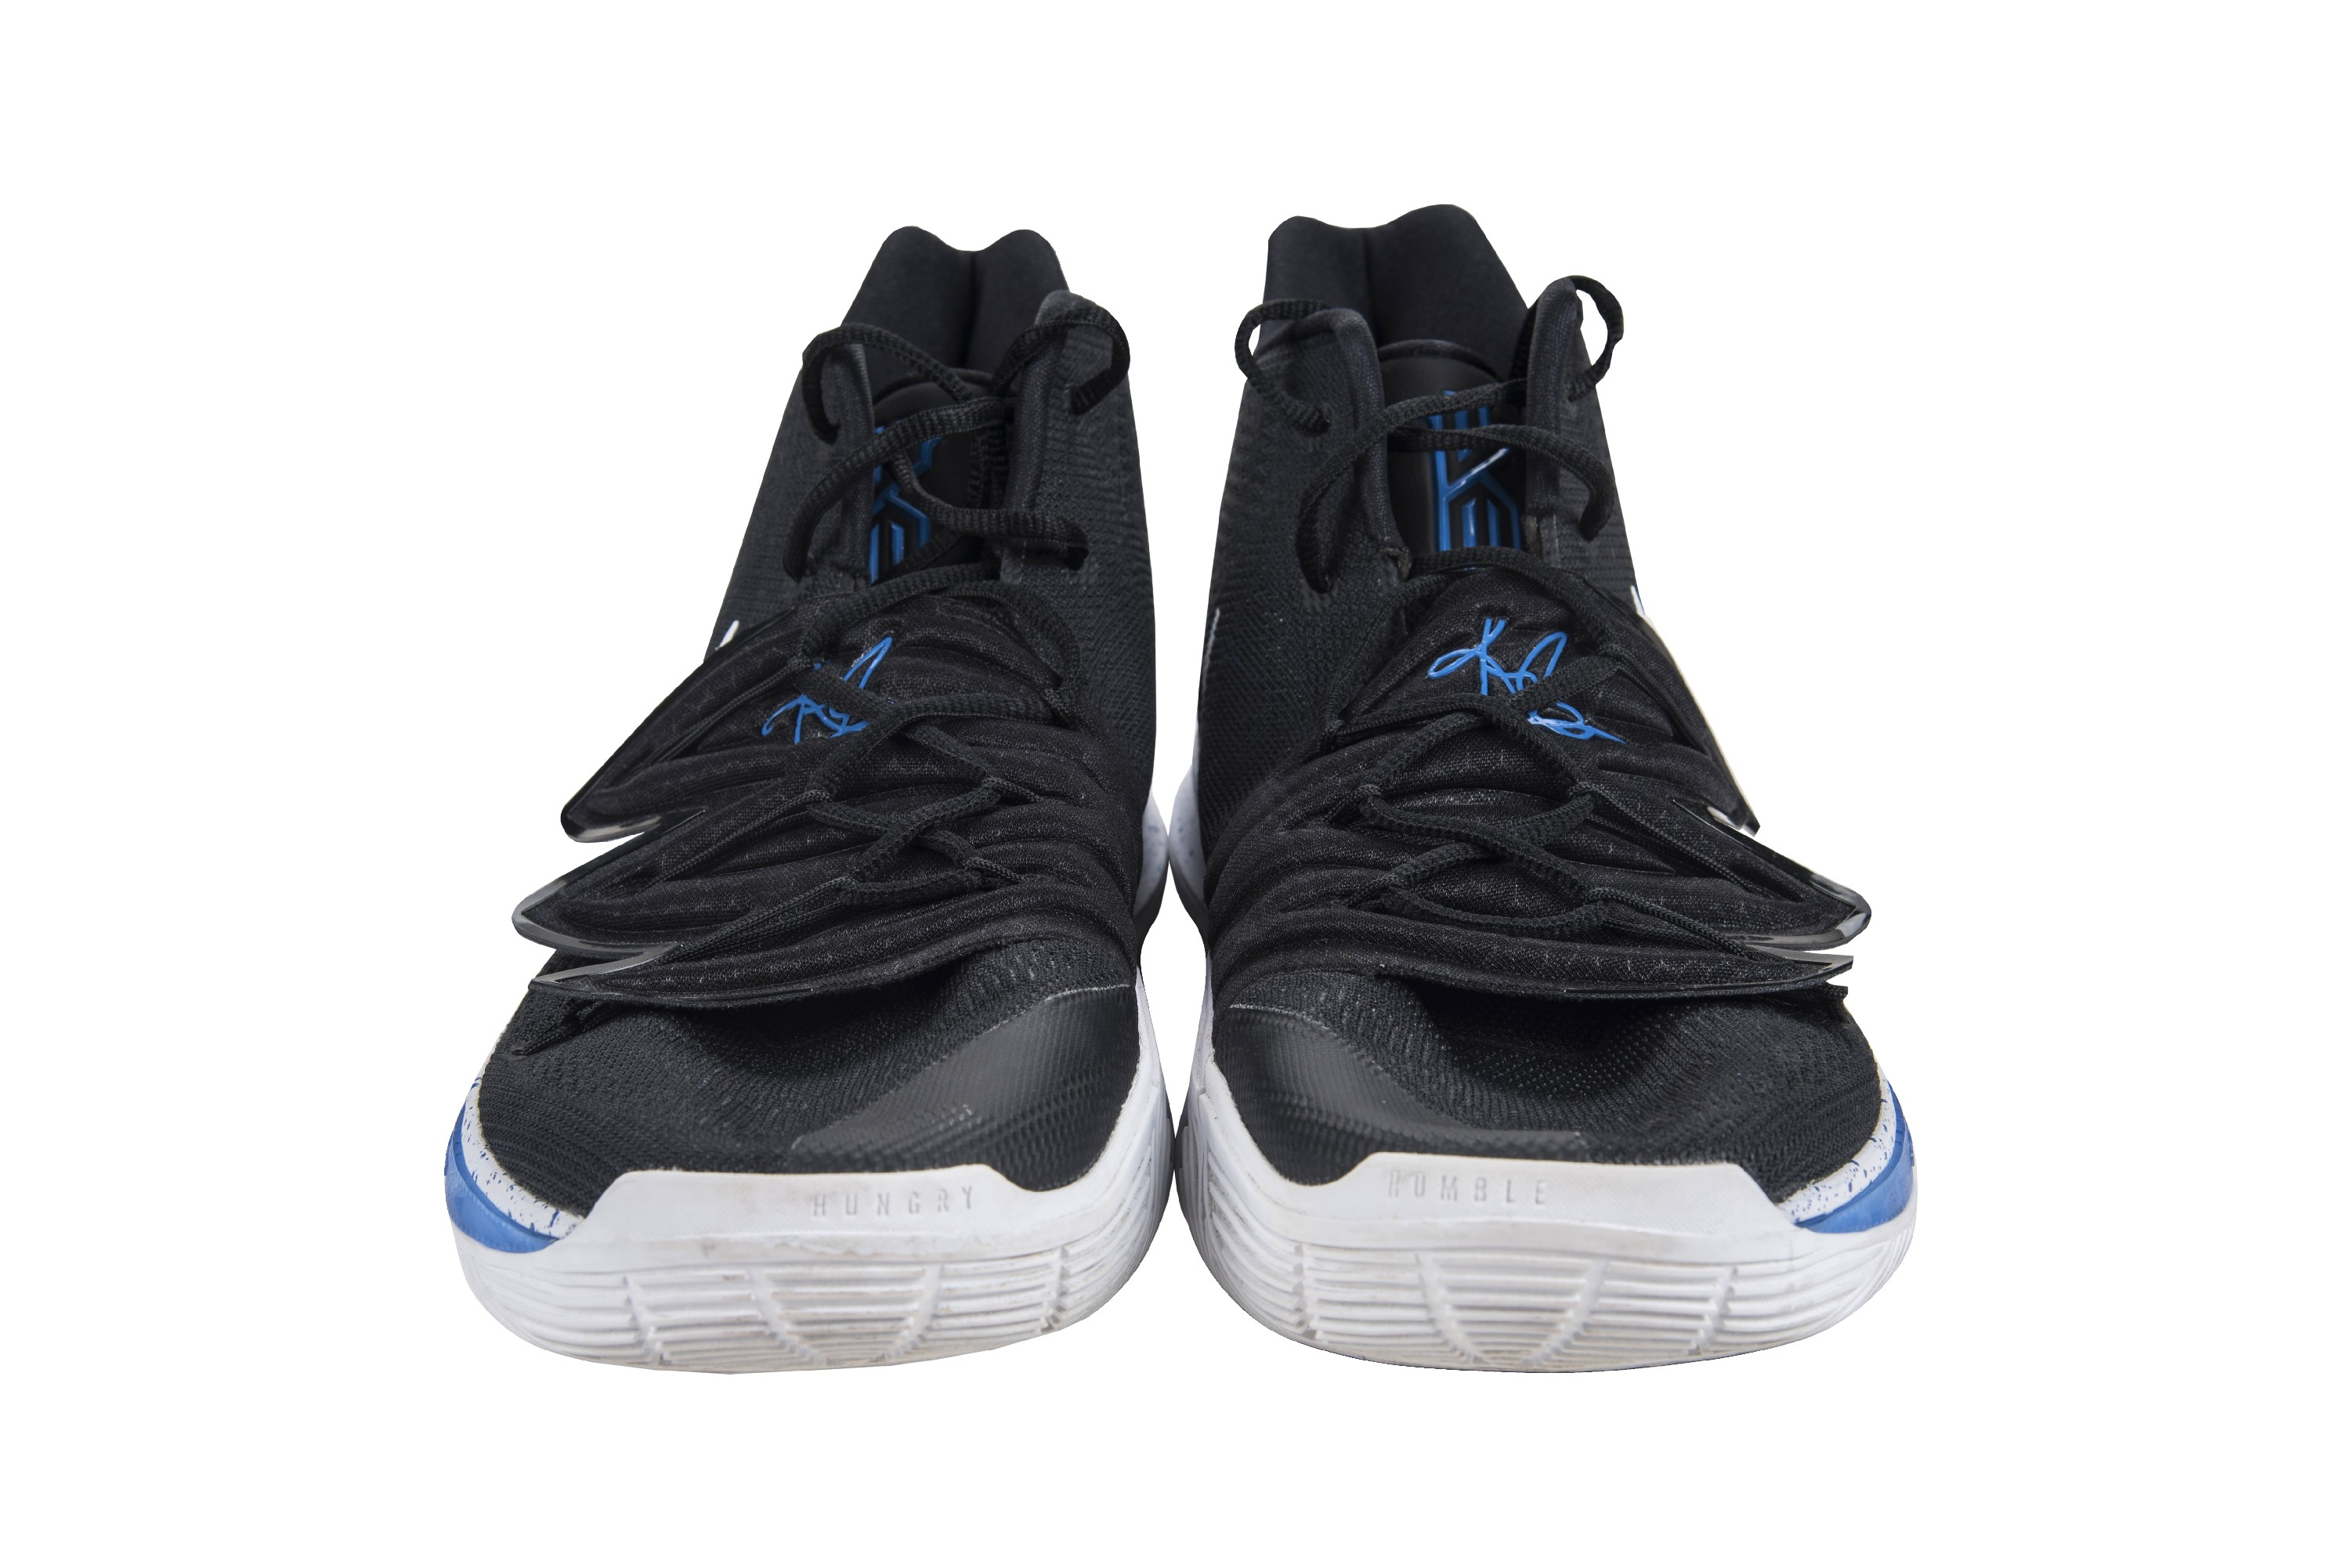 Zion Williamson Kyrie 5 Auctioned for